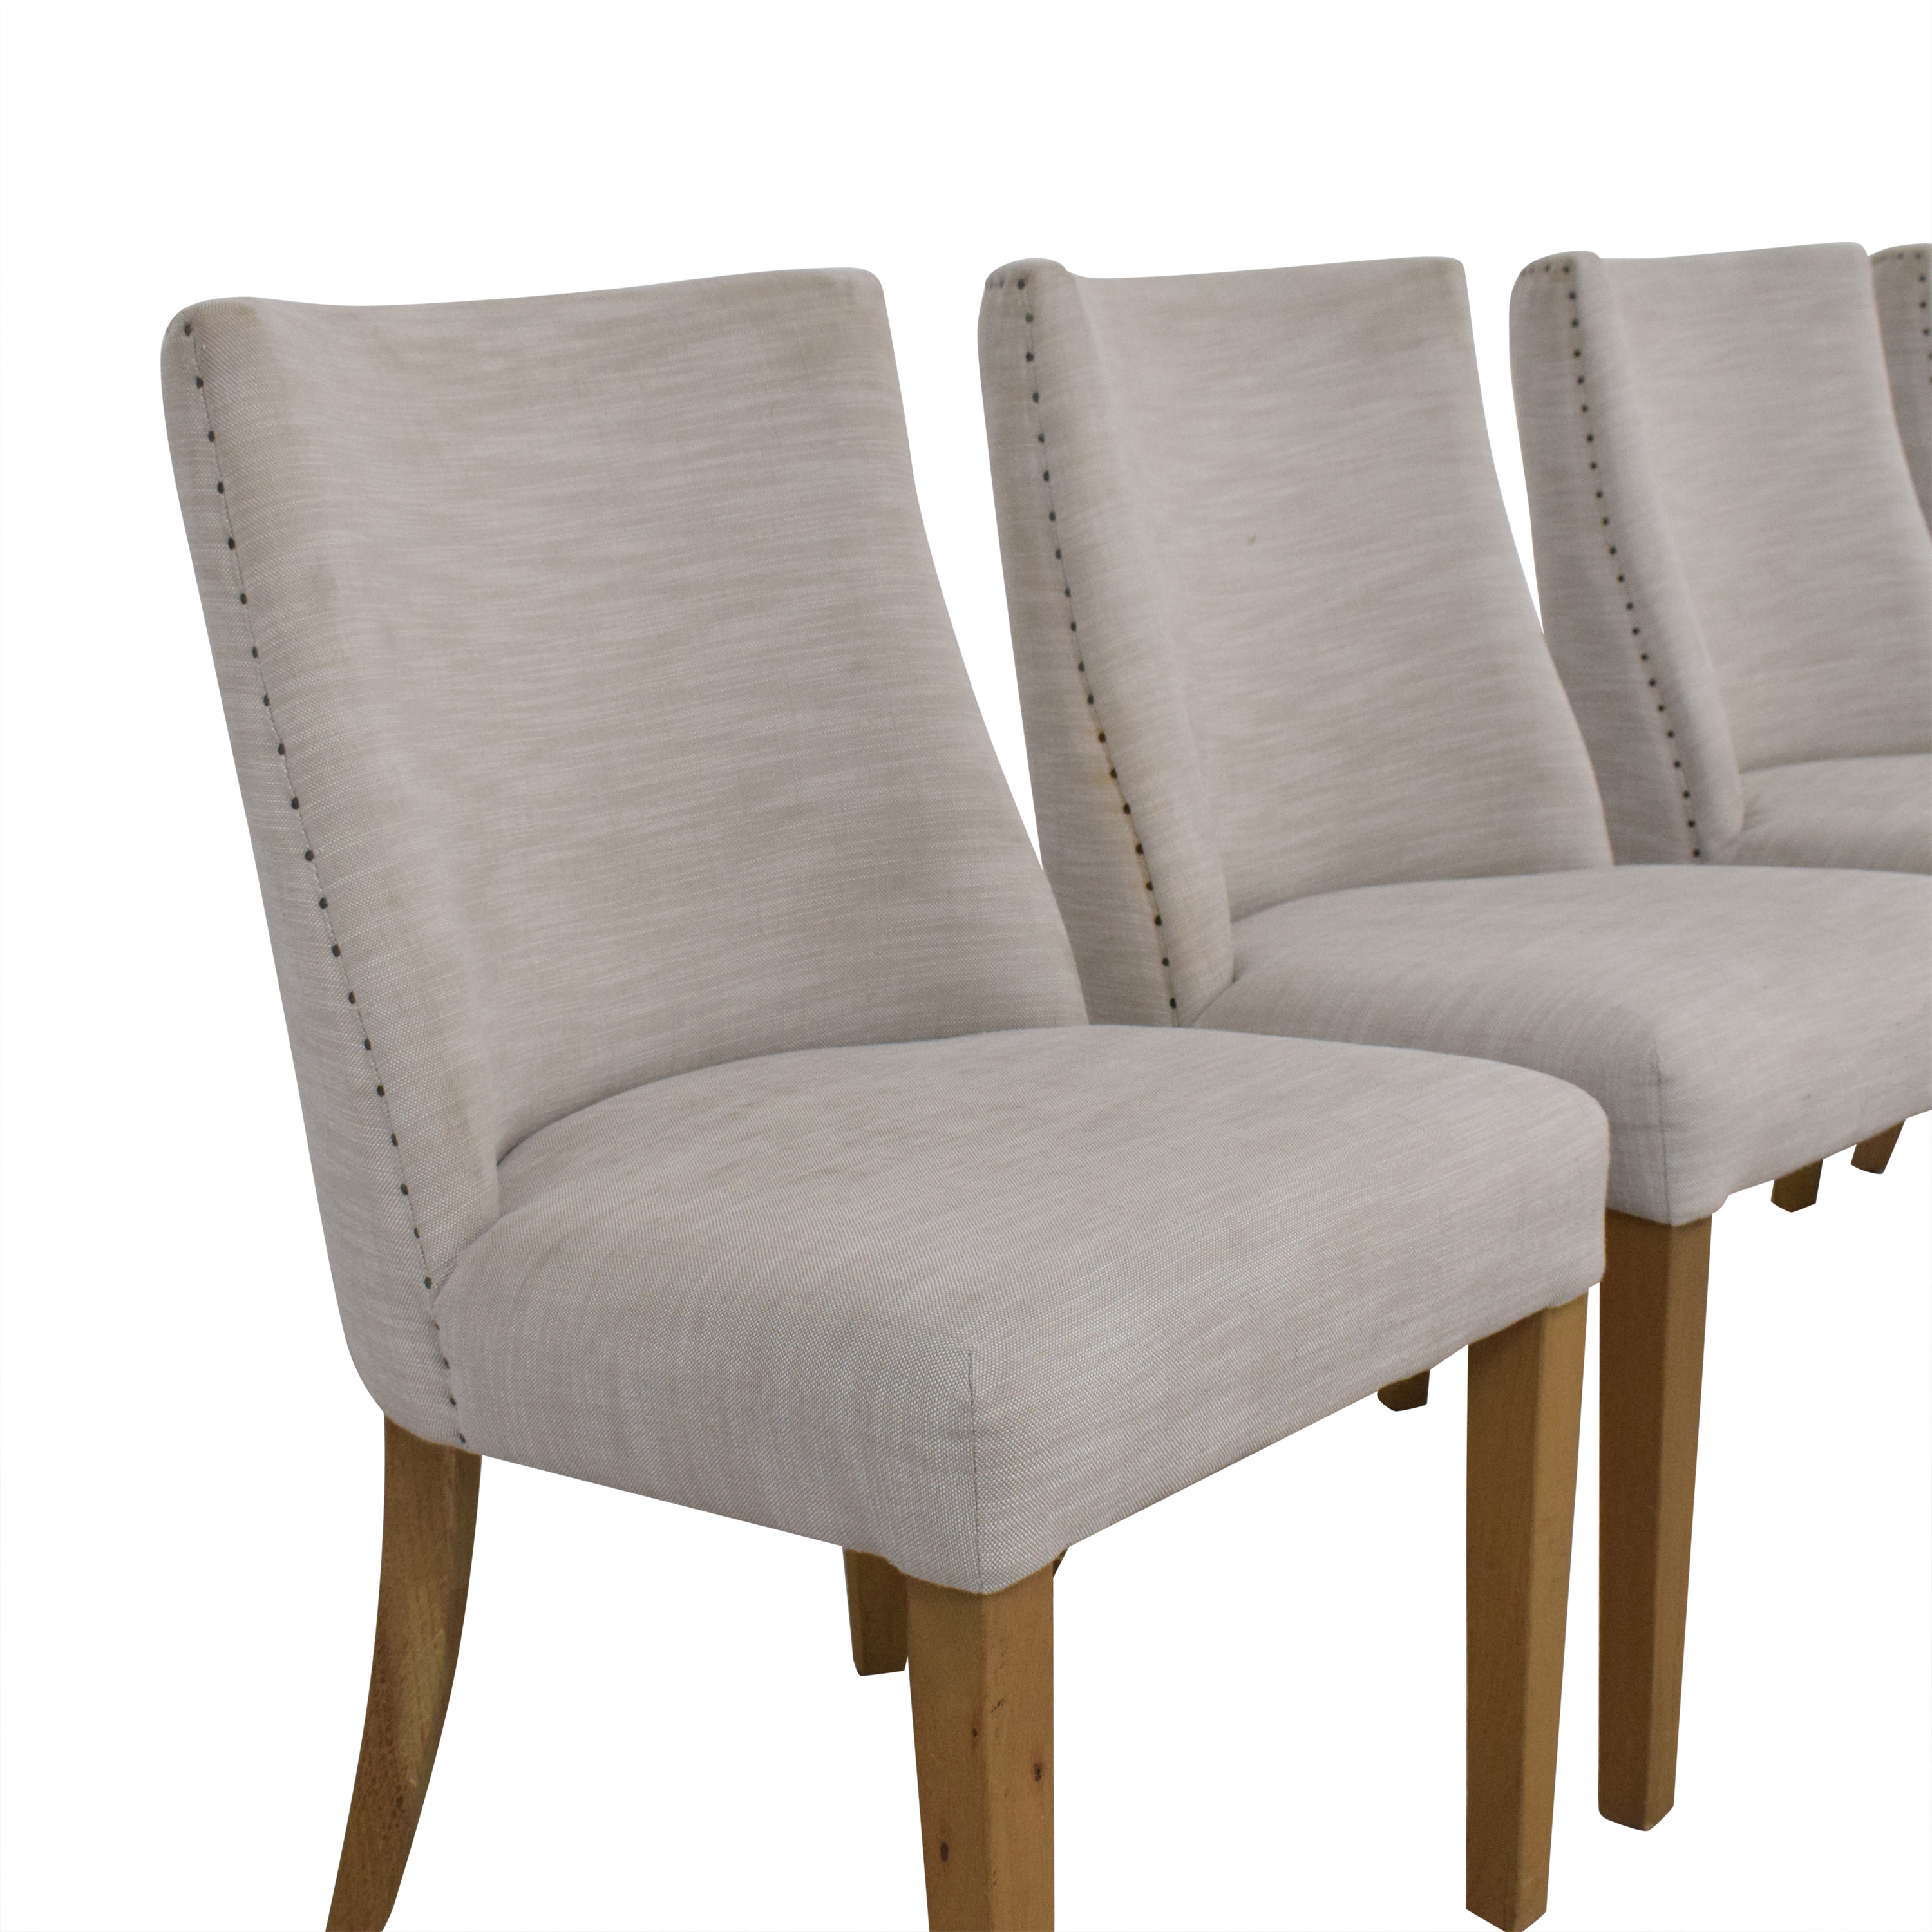 shop Restoration Hardware Restoration Hardware 1940s French Barrelback Fabric Side Chairs online